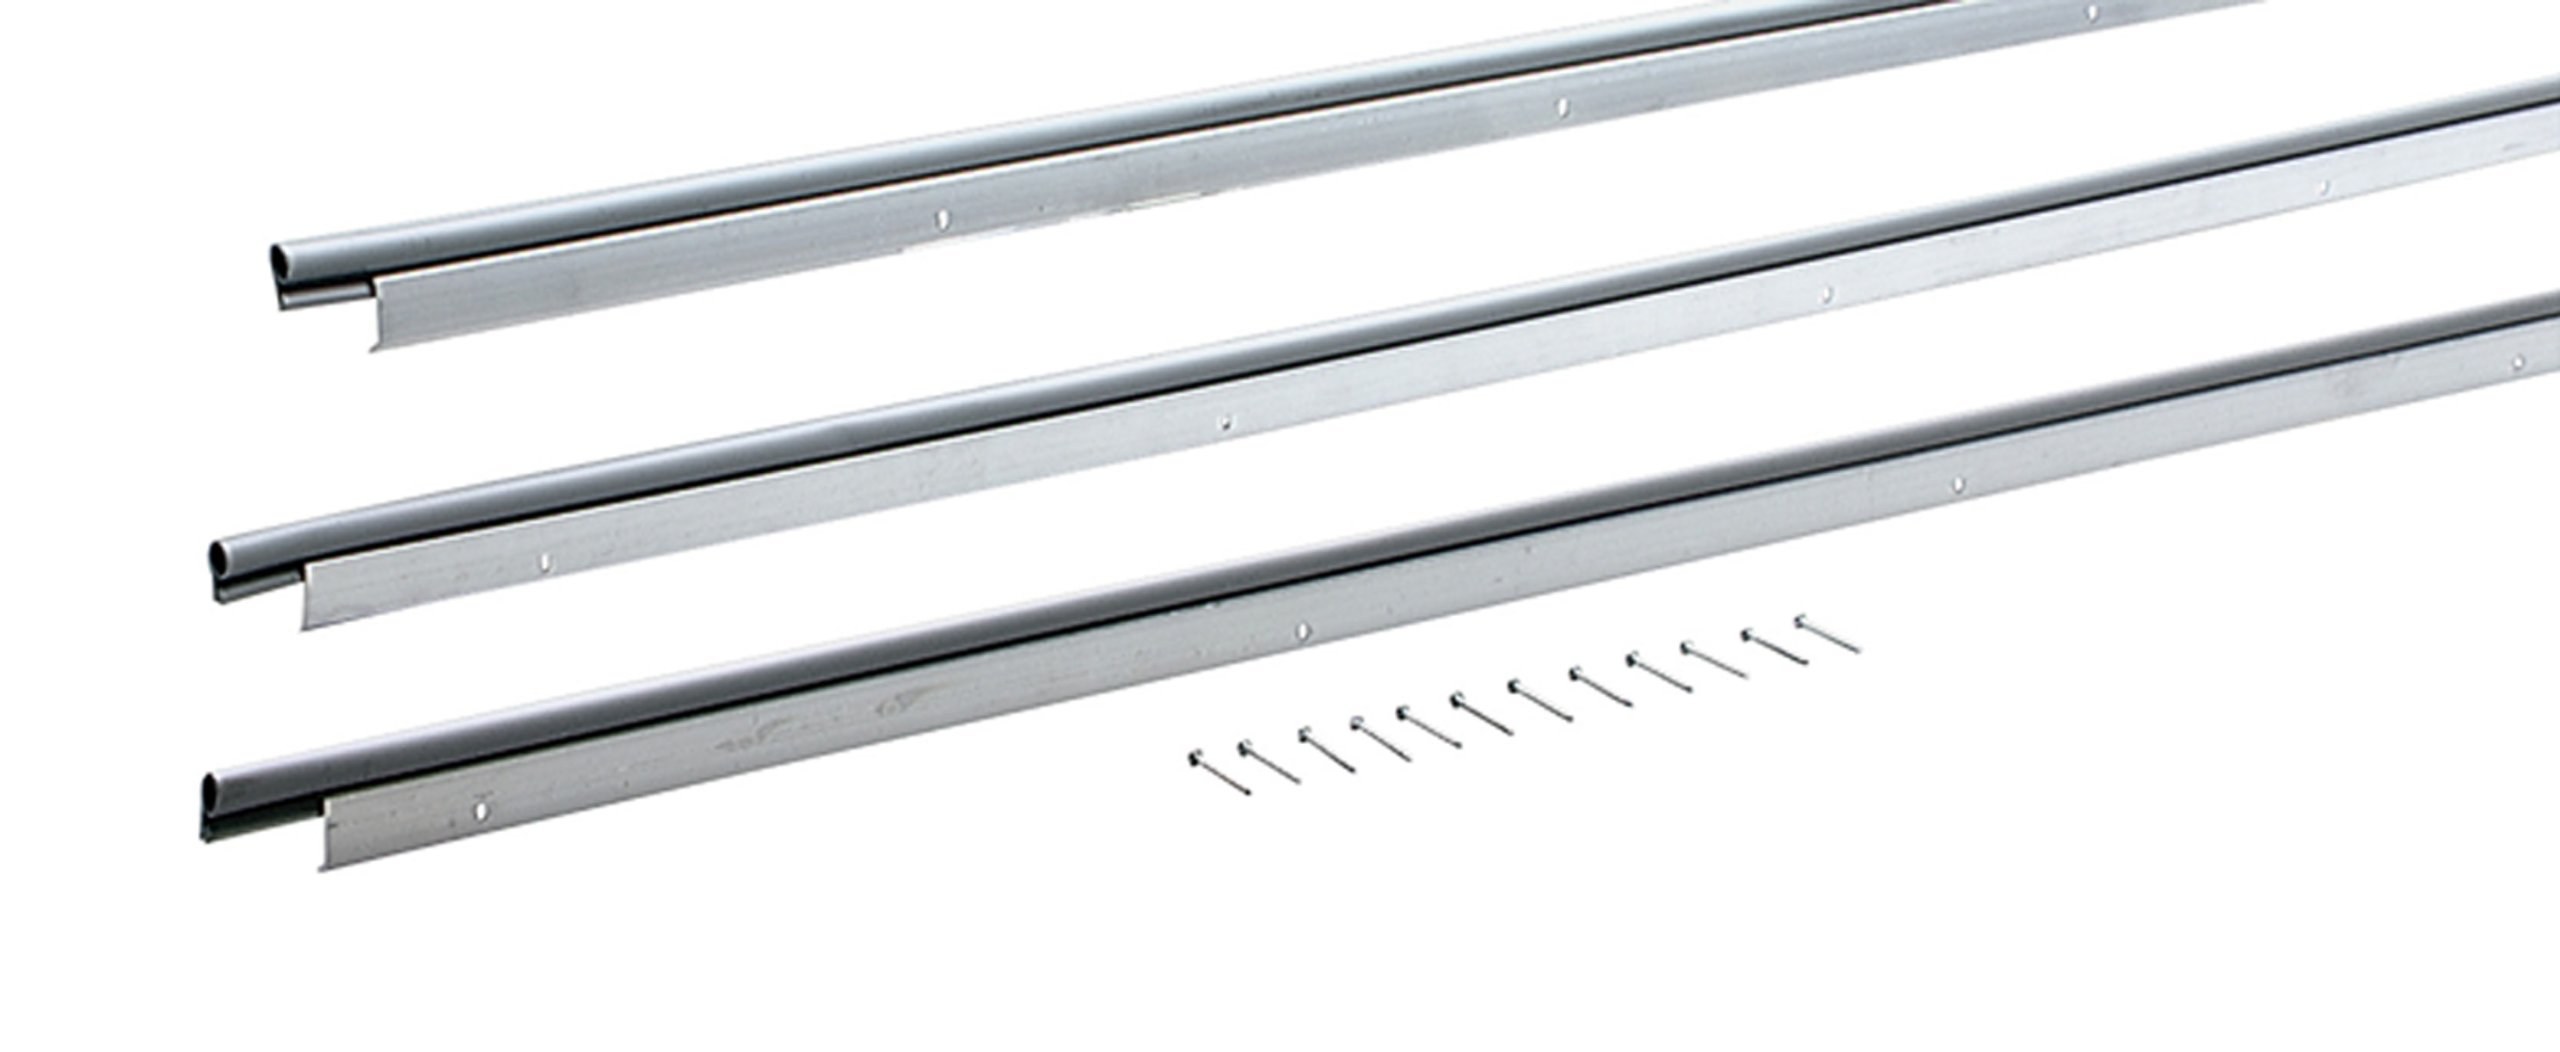 M-D Building Products 01040 36-Inch by 84-Inch Universal Door Jamb Weather-strip Kit with Nails